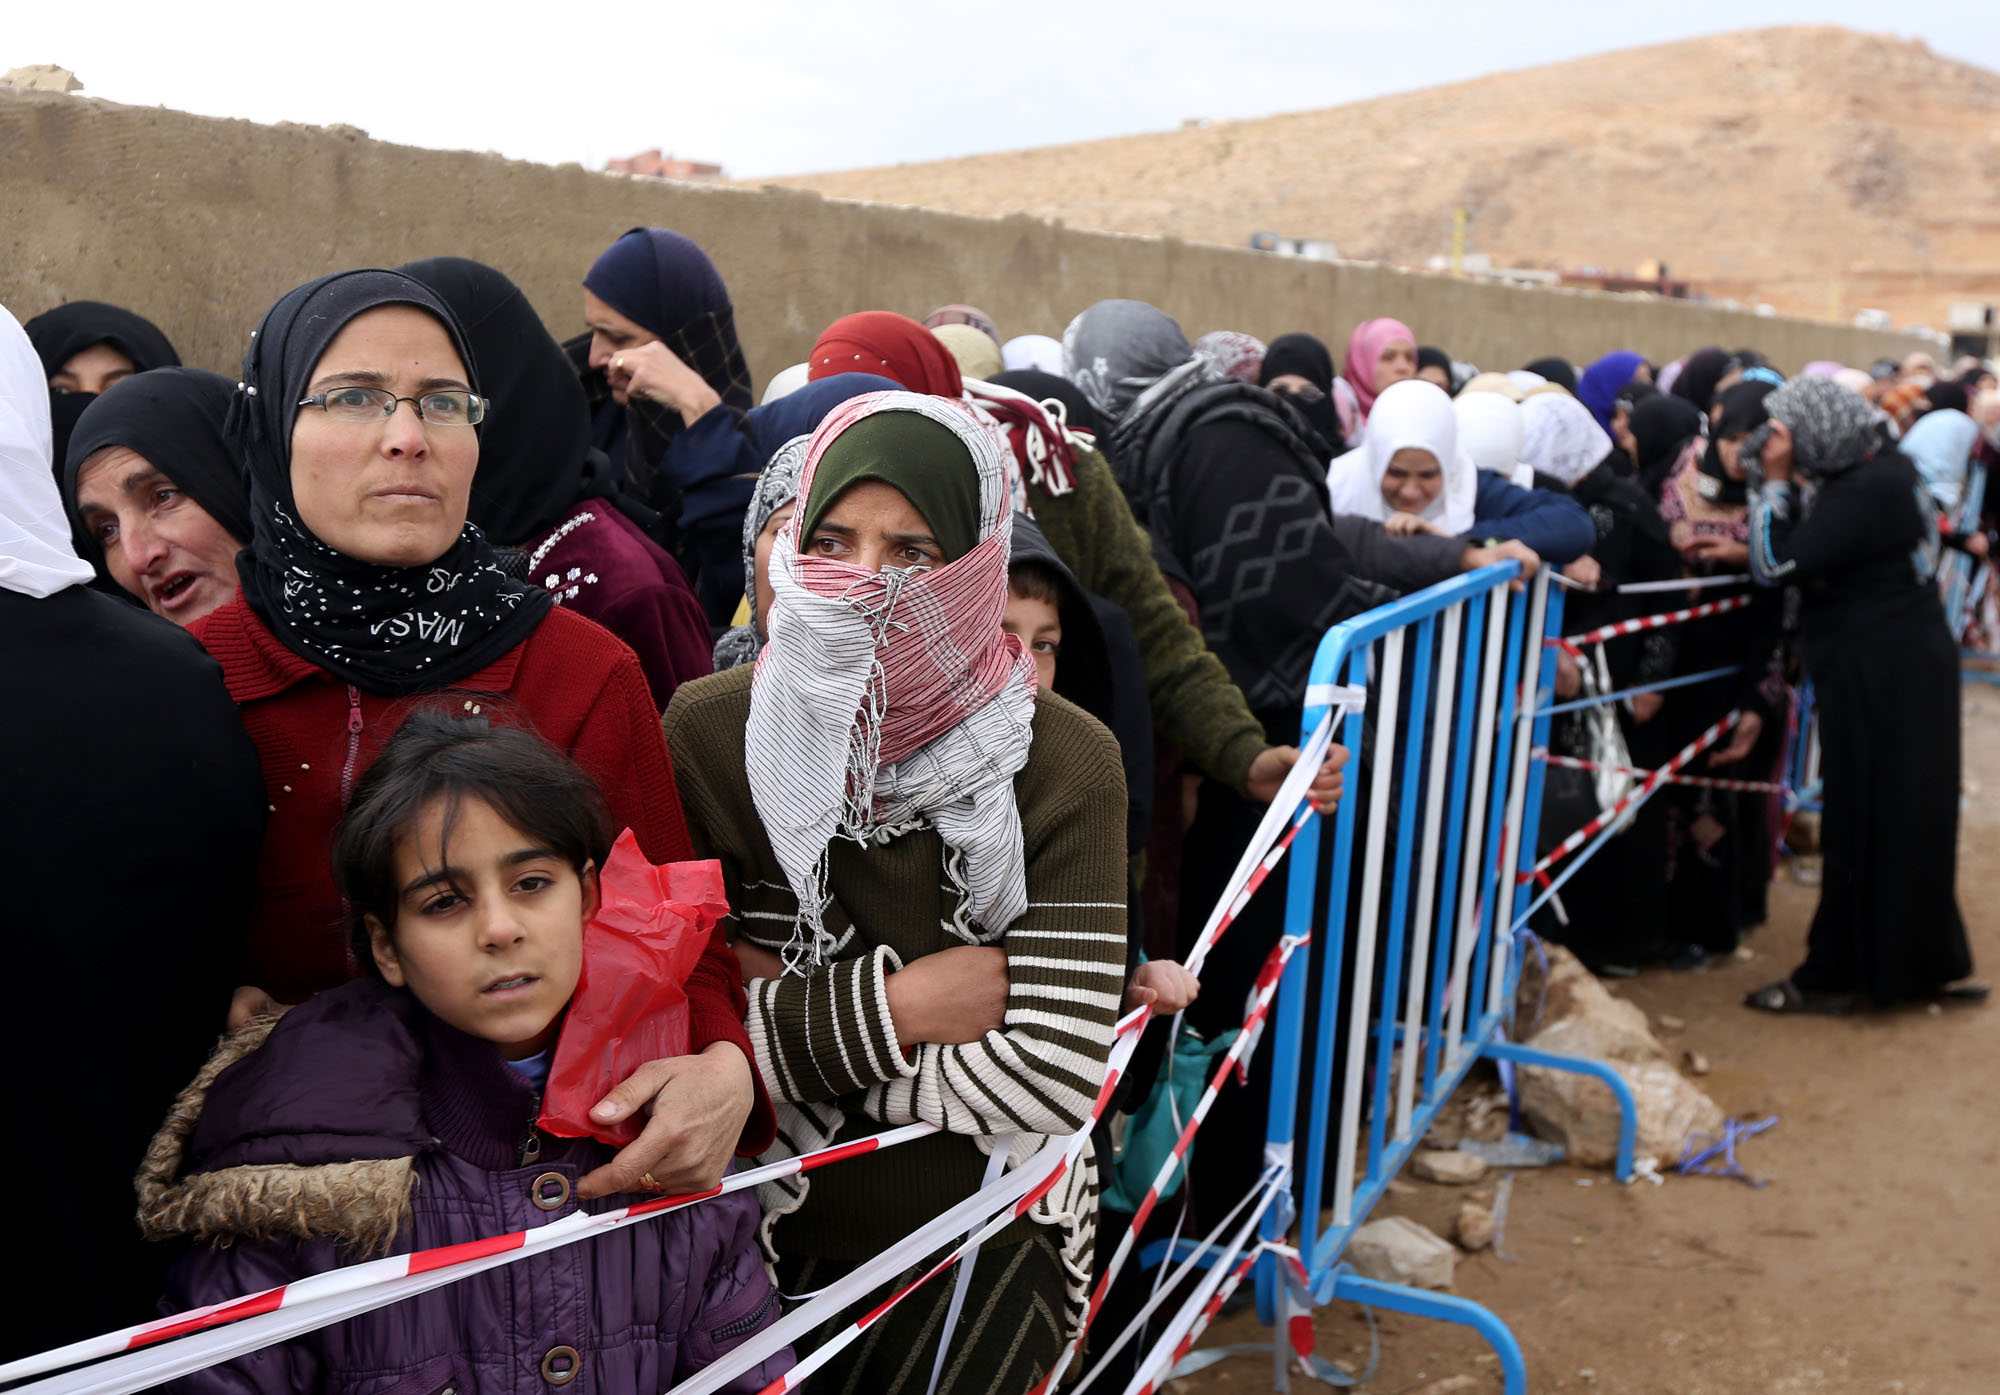 Syrian women stand in line waiting to collect aid from relief agencies helping refugees who fled into the eastern Lebanese border town of Arsal, Lebanon, Monday, Nov. 18, 2013. Thousands of Syrians have fled to Lebanon over the past days as government forces attack the western town of Qarah near the border with Lebanon. (AP Photo/Bilal Hussein)